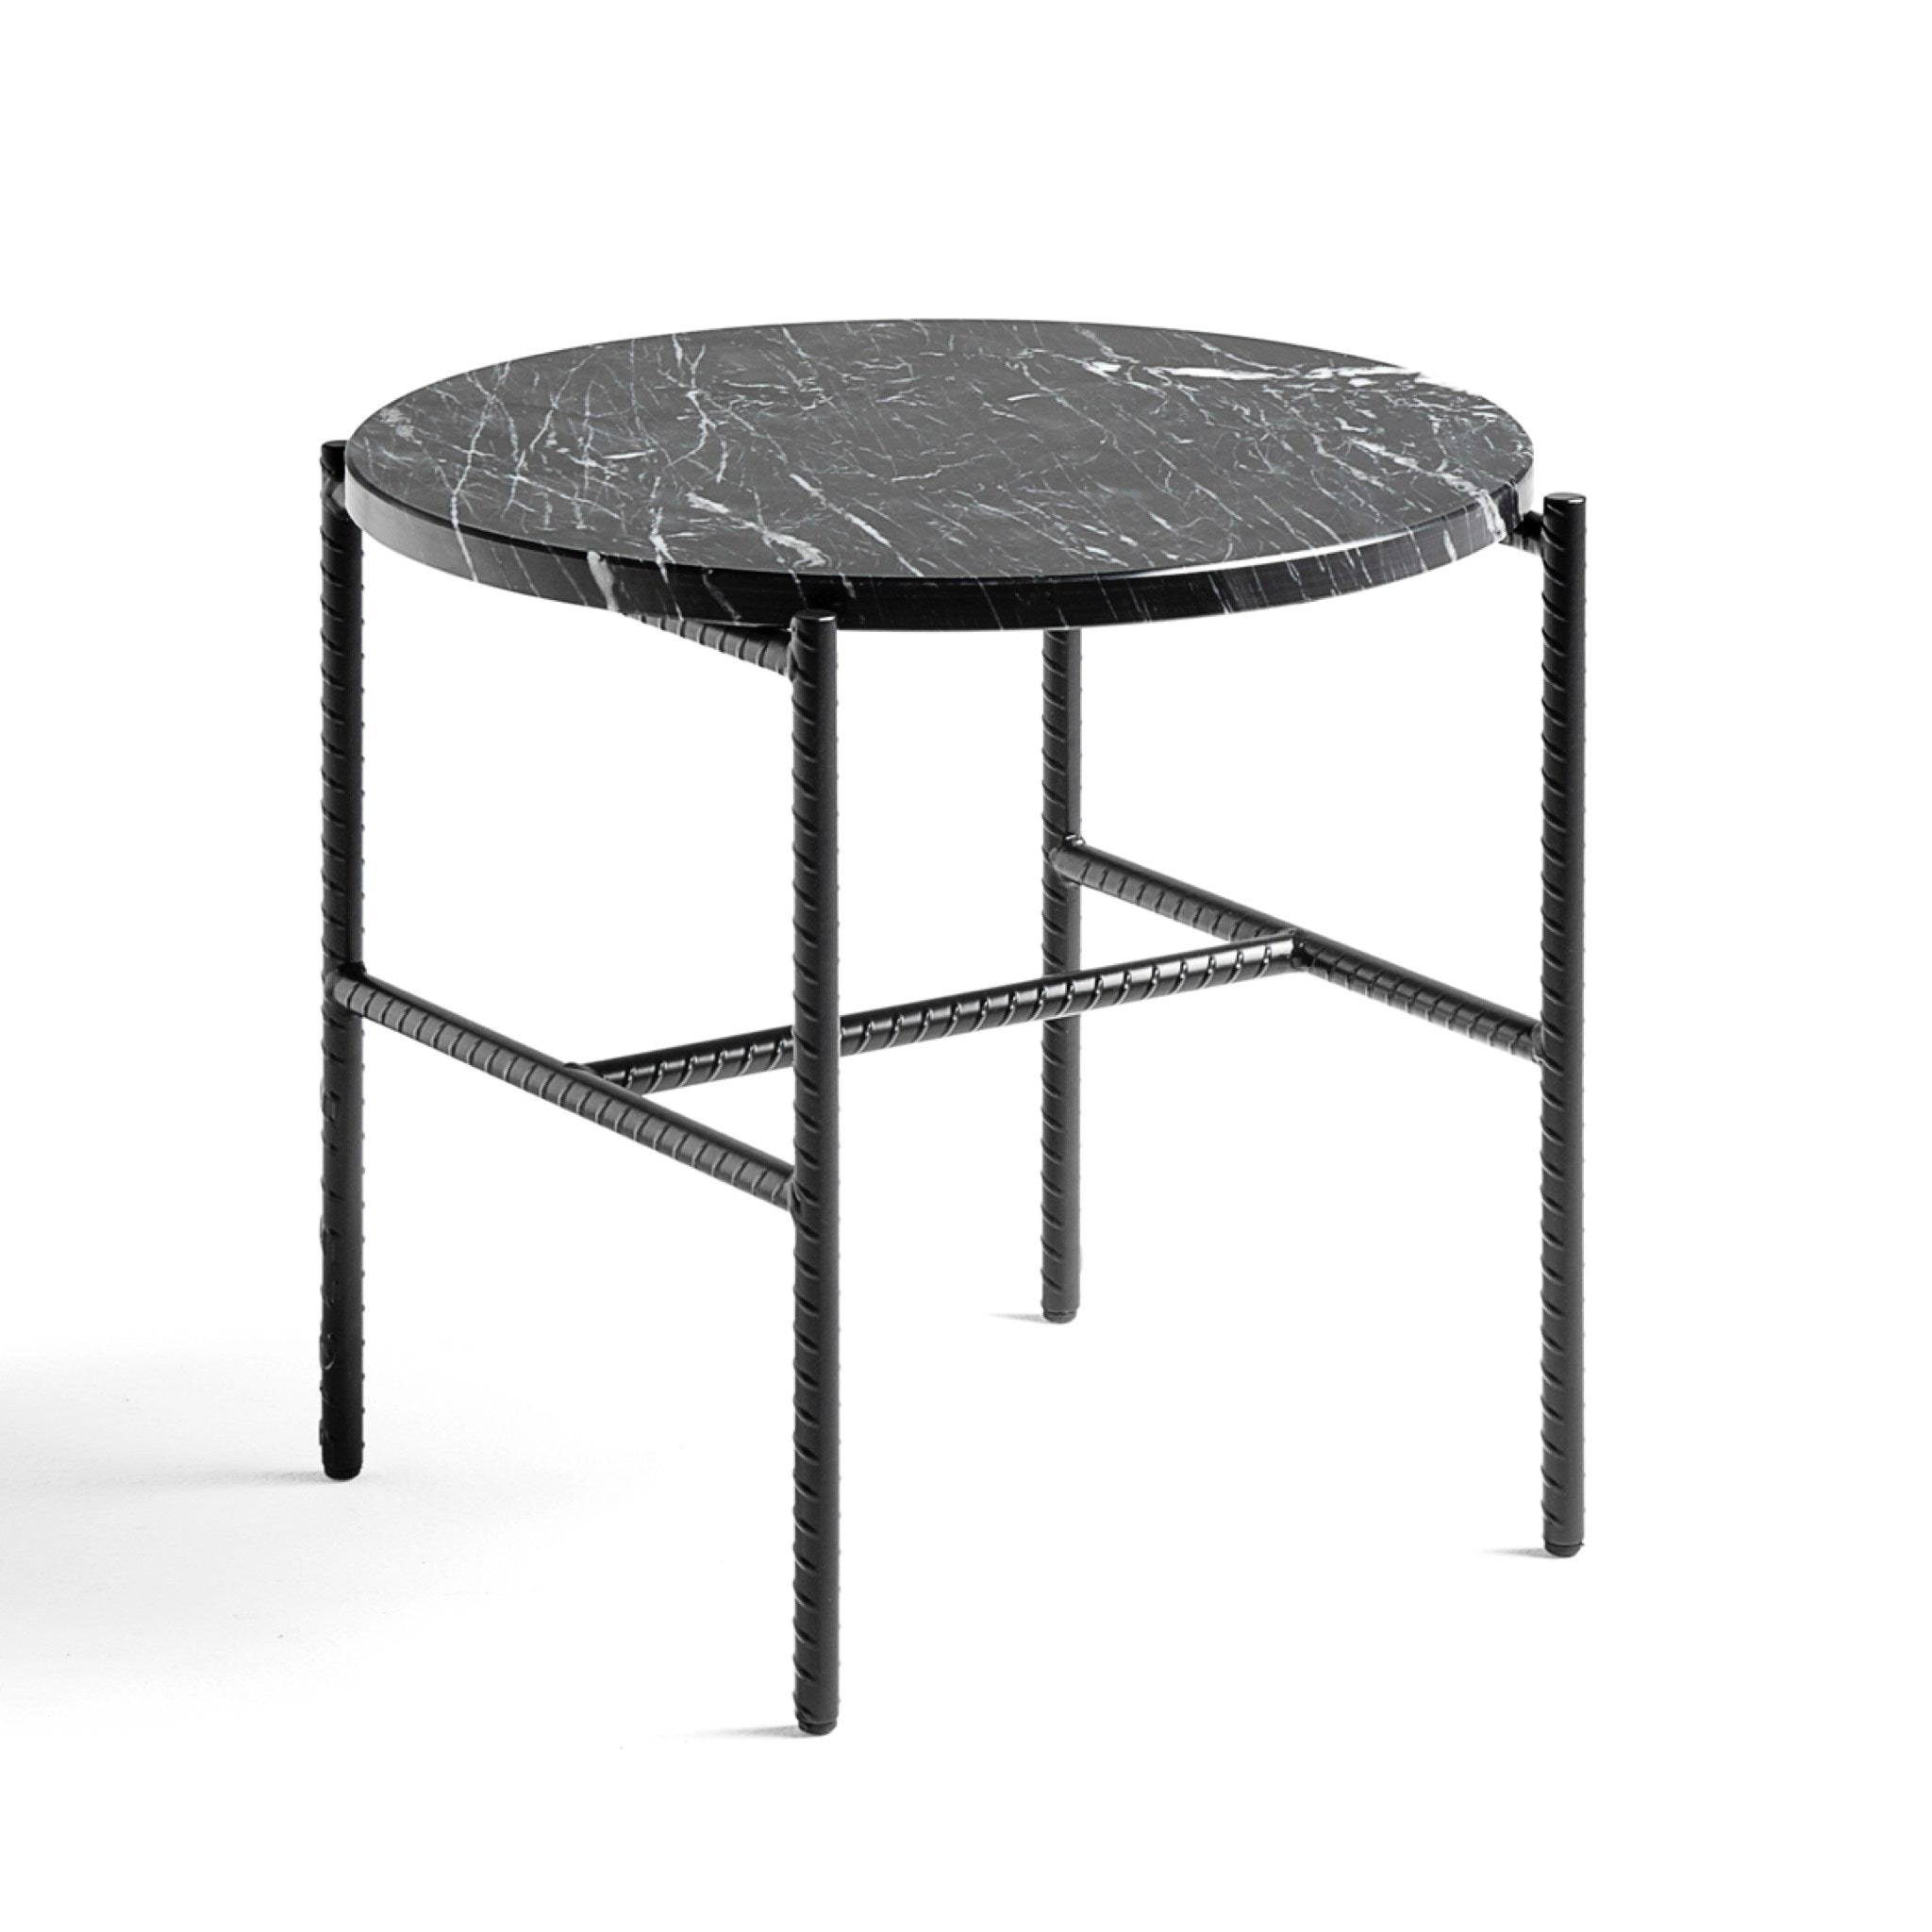 Rebar Table Round by Hay